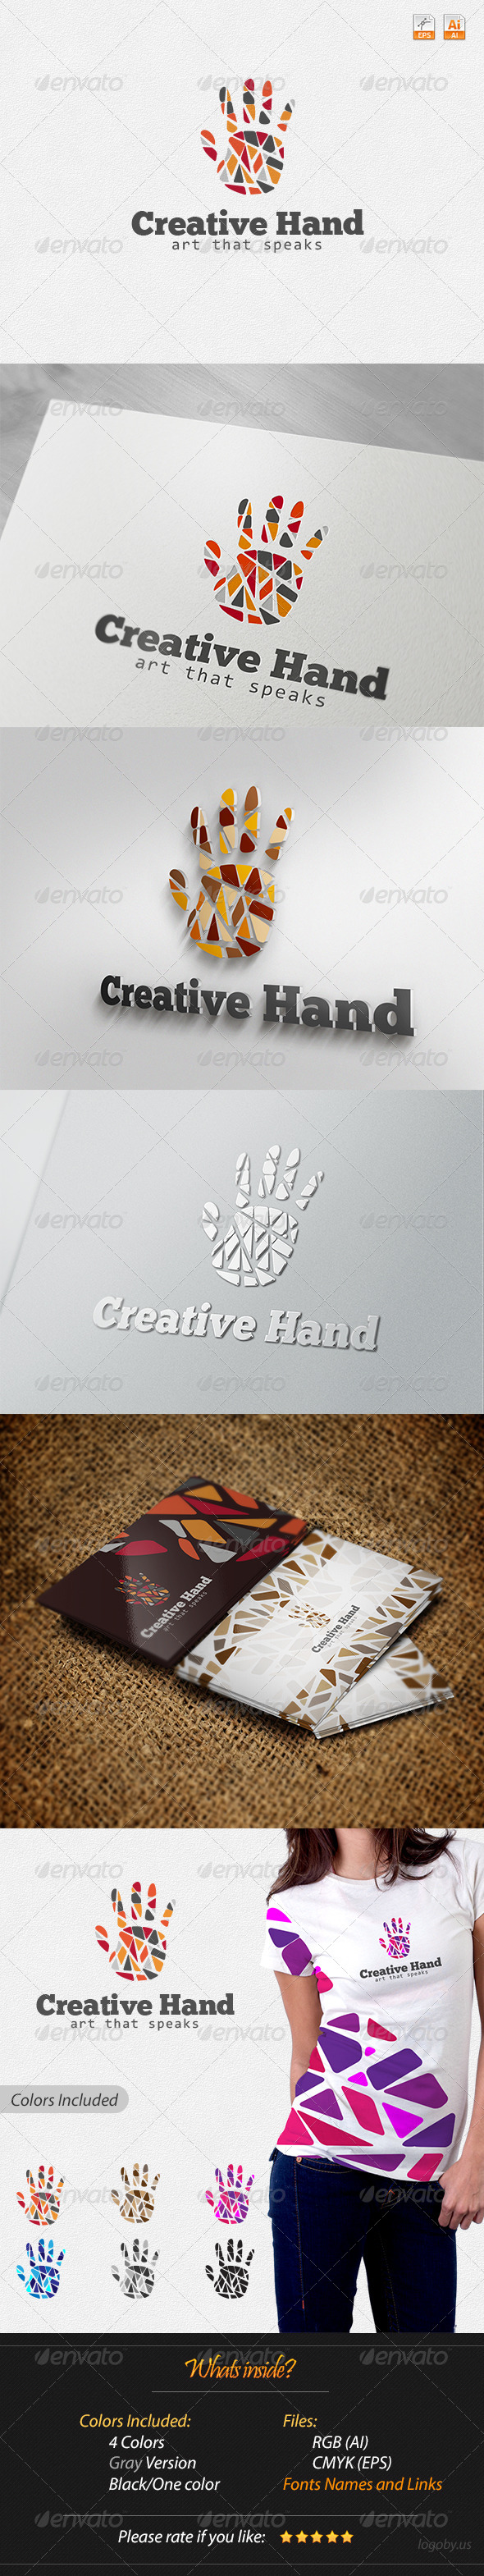 Creative Hand - Art that Speaks Logo - Humans Logo Templates